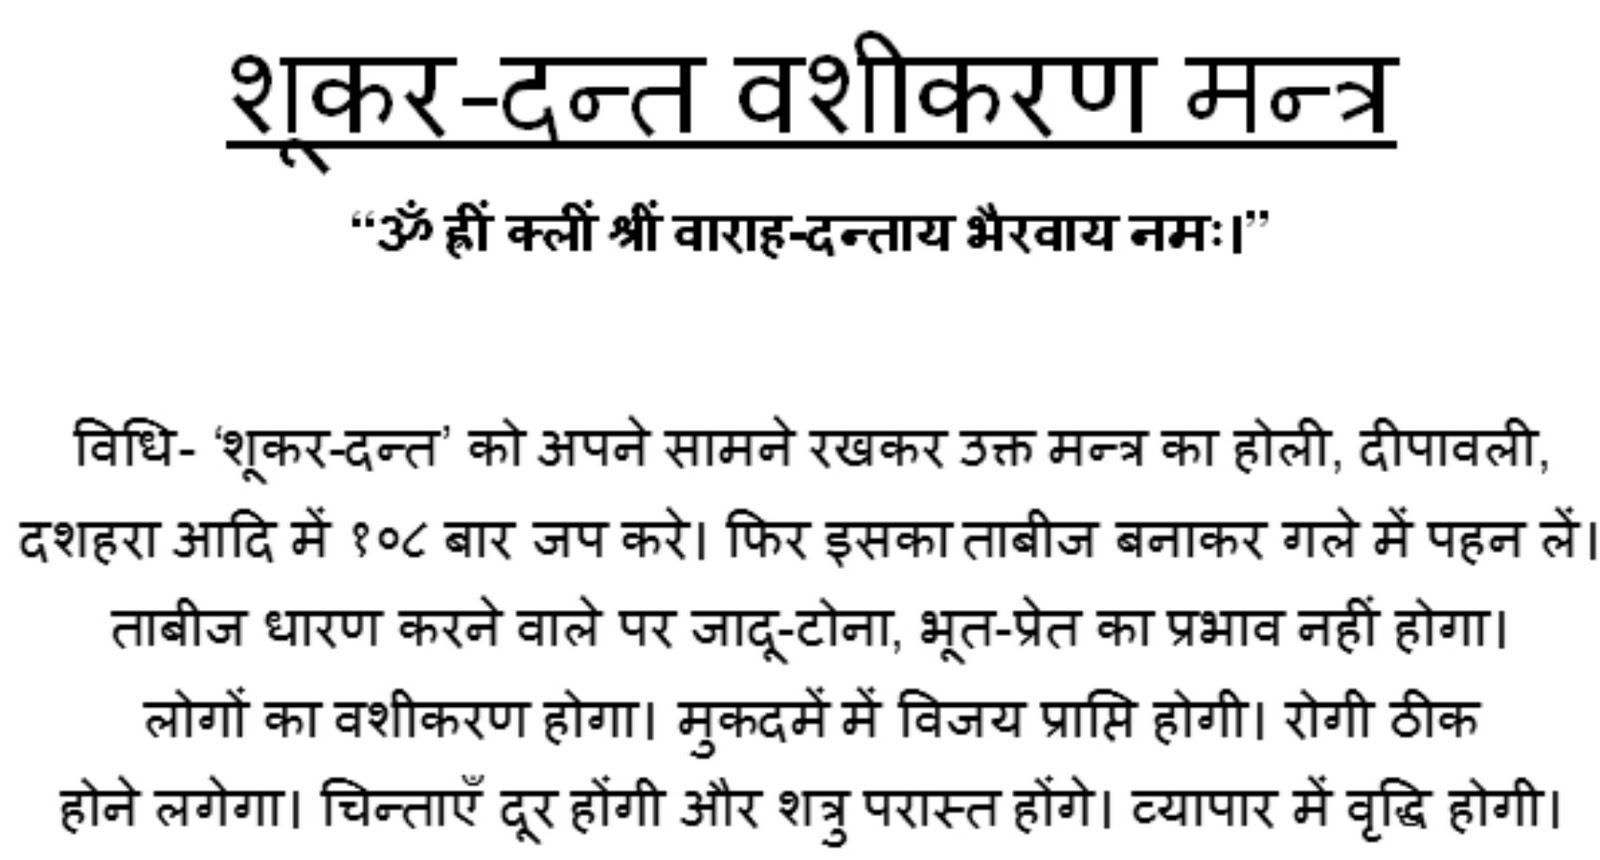 Mantra For Disease Cure In Hindi